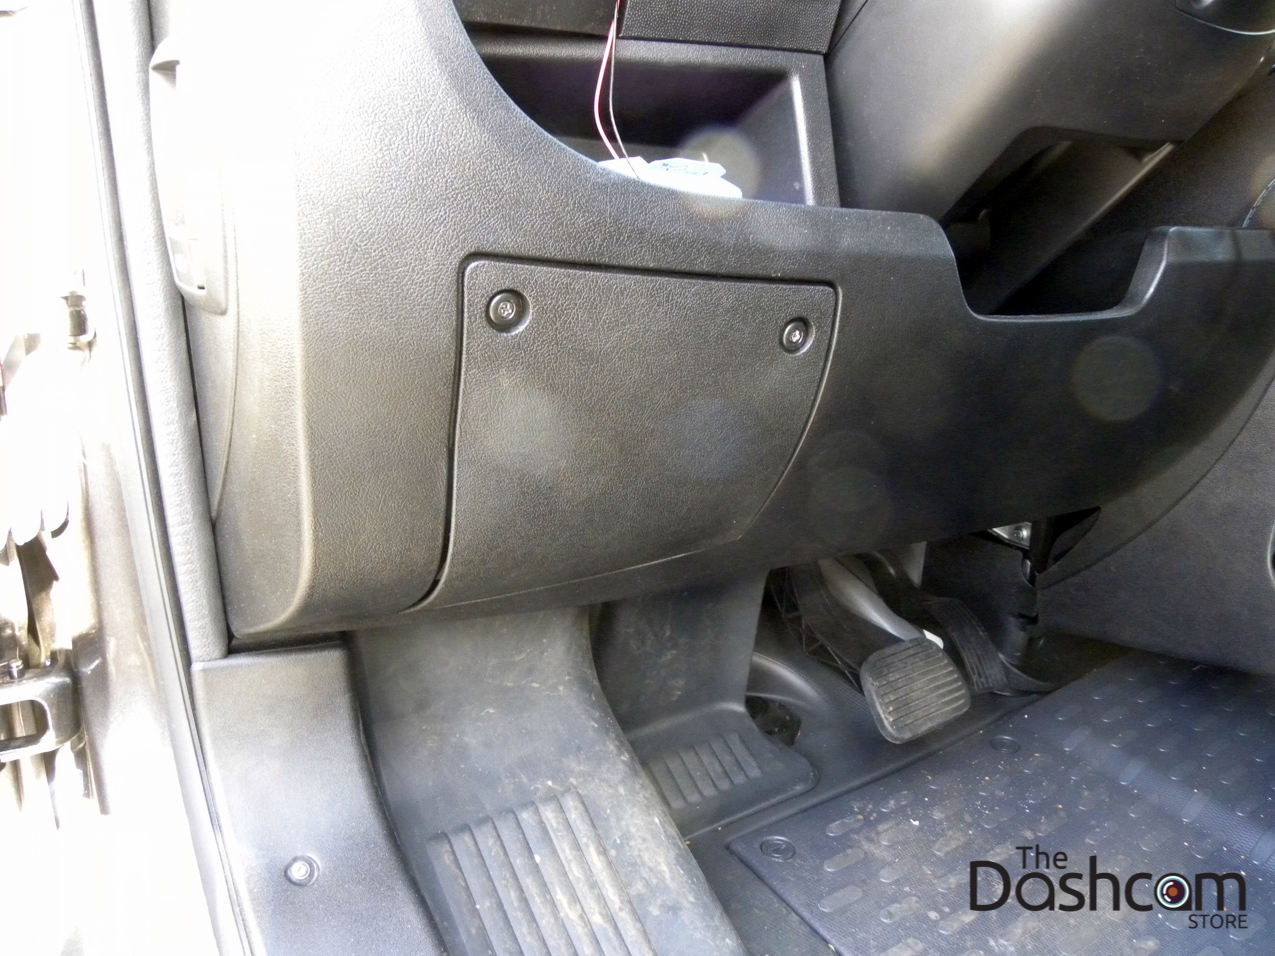 2015 Dodge Ram Promaster Blackvue Dr650gw 2ch Dashcam Installation Fuse Box Dash Cam 2500 The Interior